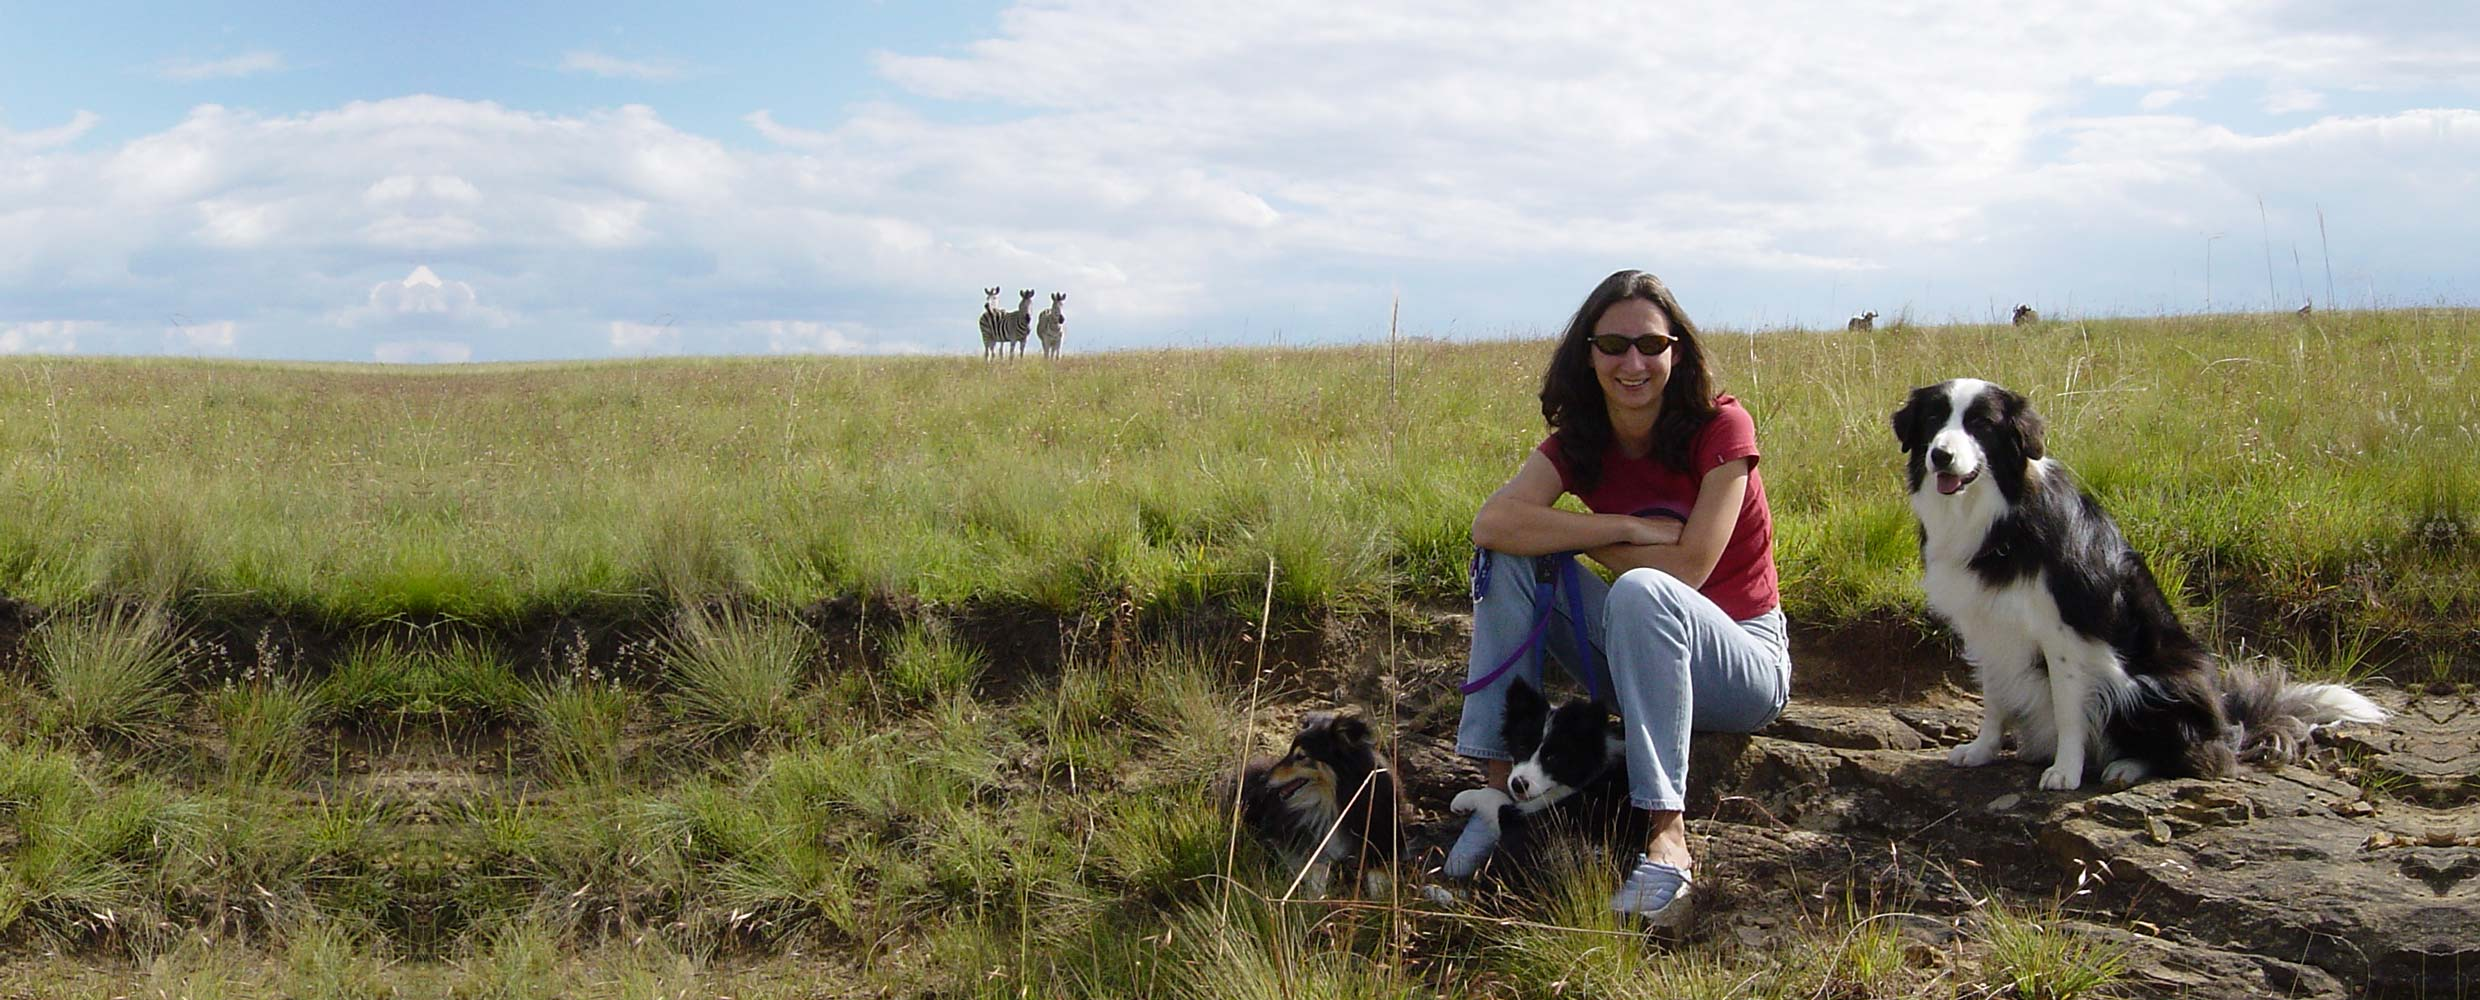 Alison Roets with Odin the Border Colie and zebras on the highveld South Africa